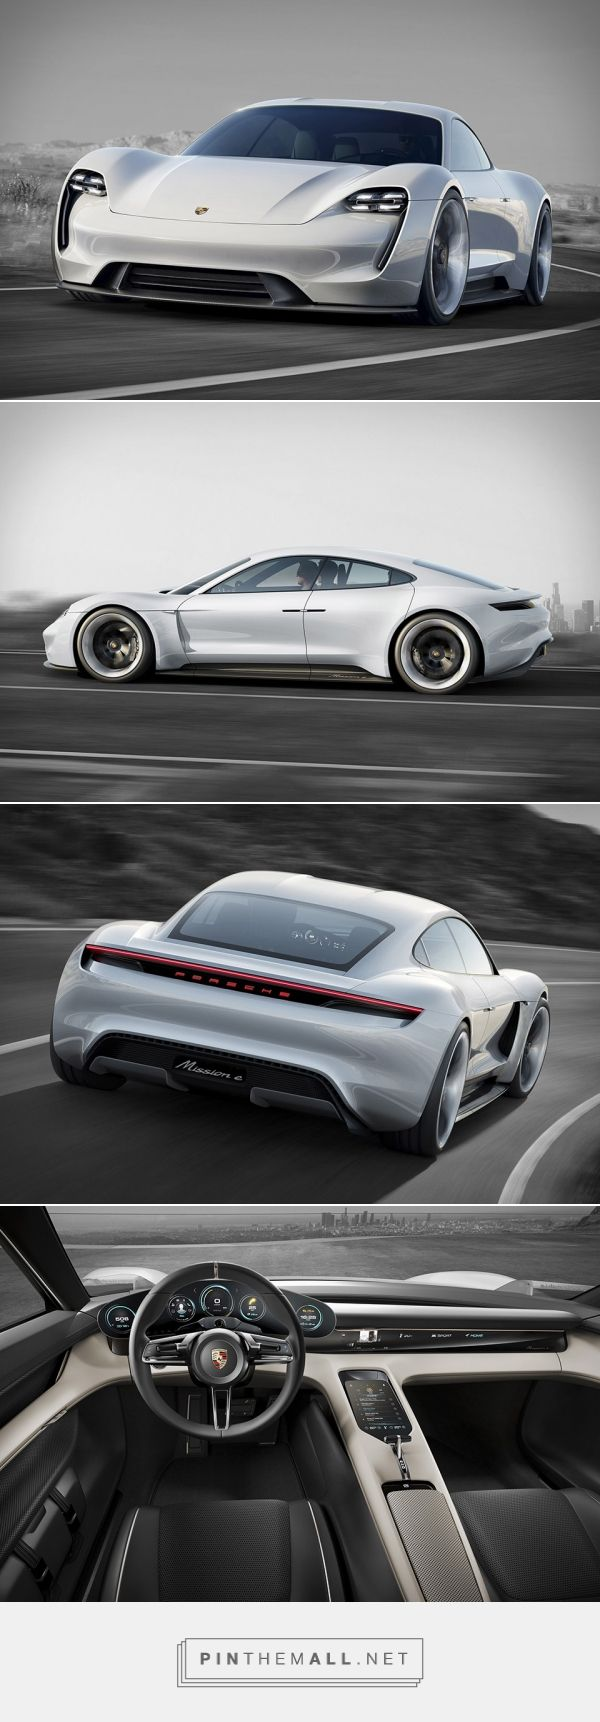 Porsche Mission E Concept - electric 4-door awesomeness!